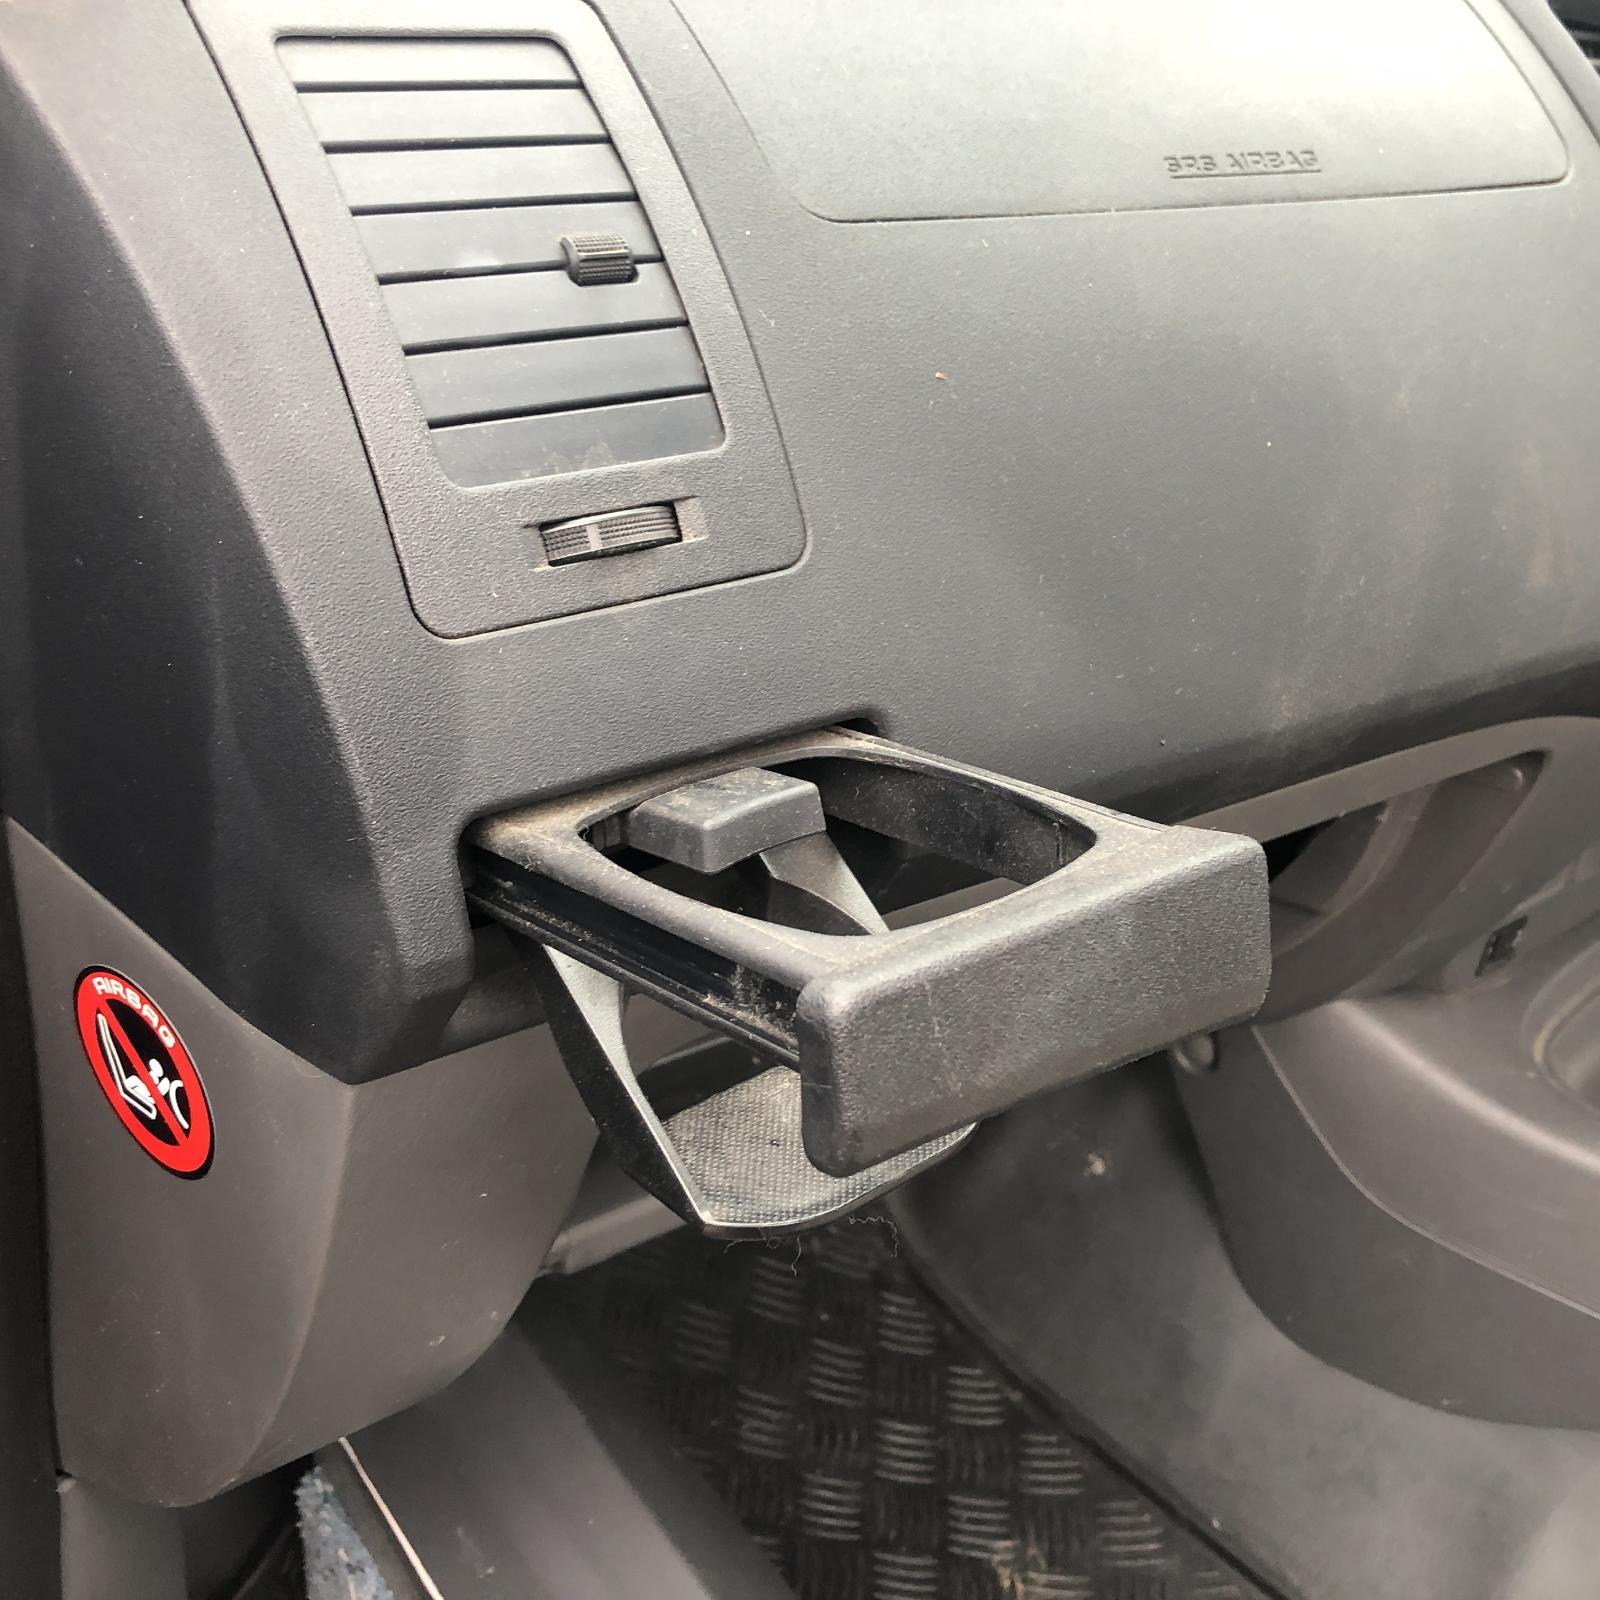 TOYOTA HILUX, Trim Panel, CUP HOLDER IN DASH (LH SIDE), 03/05-08/15